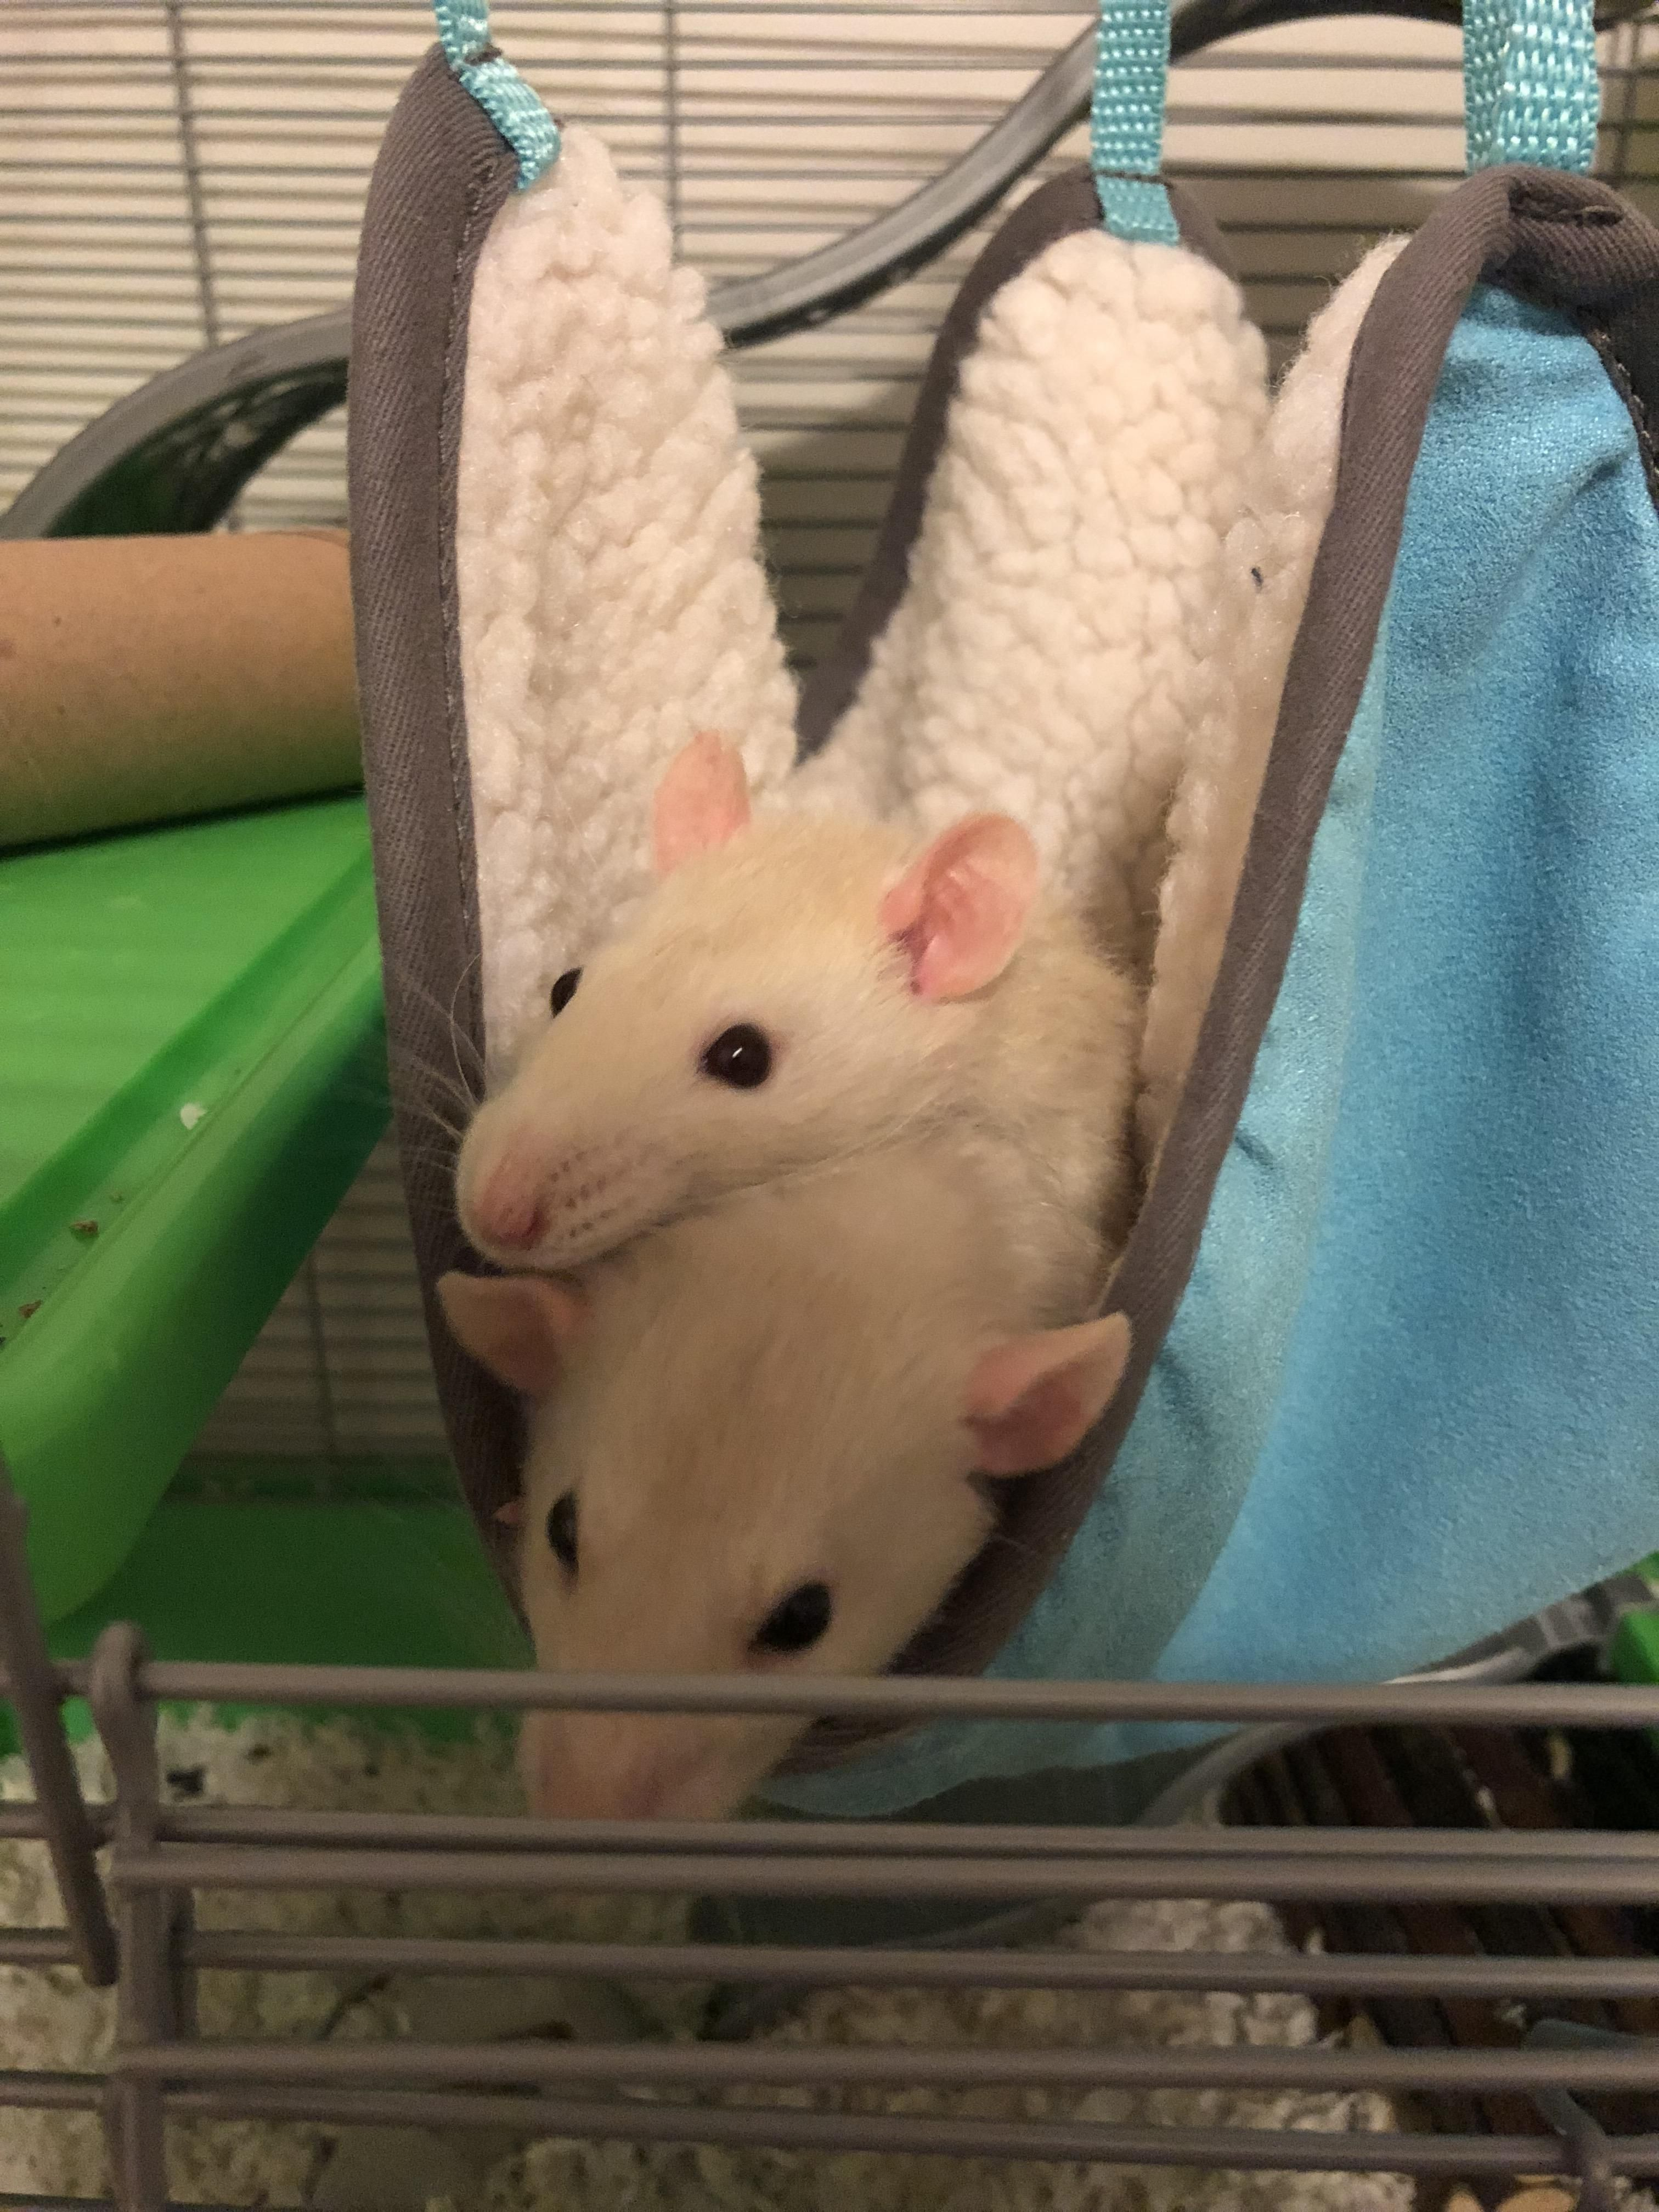 Nothing Better Than Snuggling With Your Sister In A Hammock Aww Cute Rat Cuterats Ratsofpinterest Cuddle Fluffy Animals Pet Rats Cute Rats Cute Animals